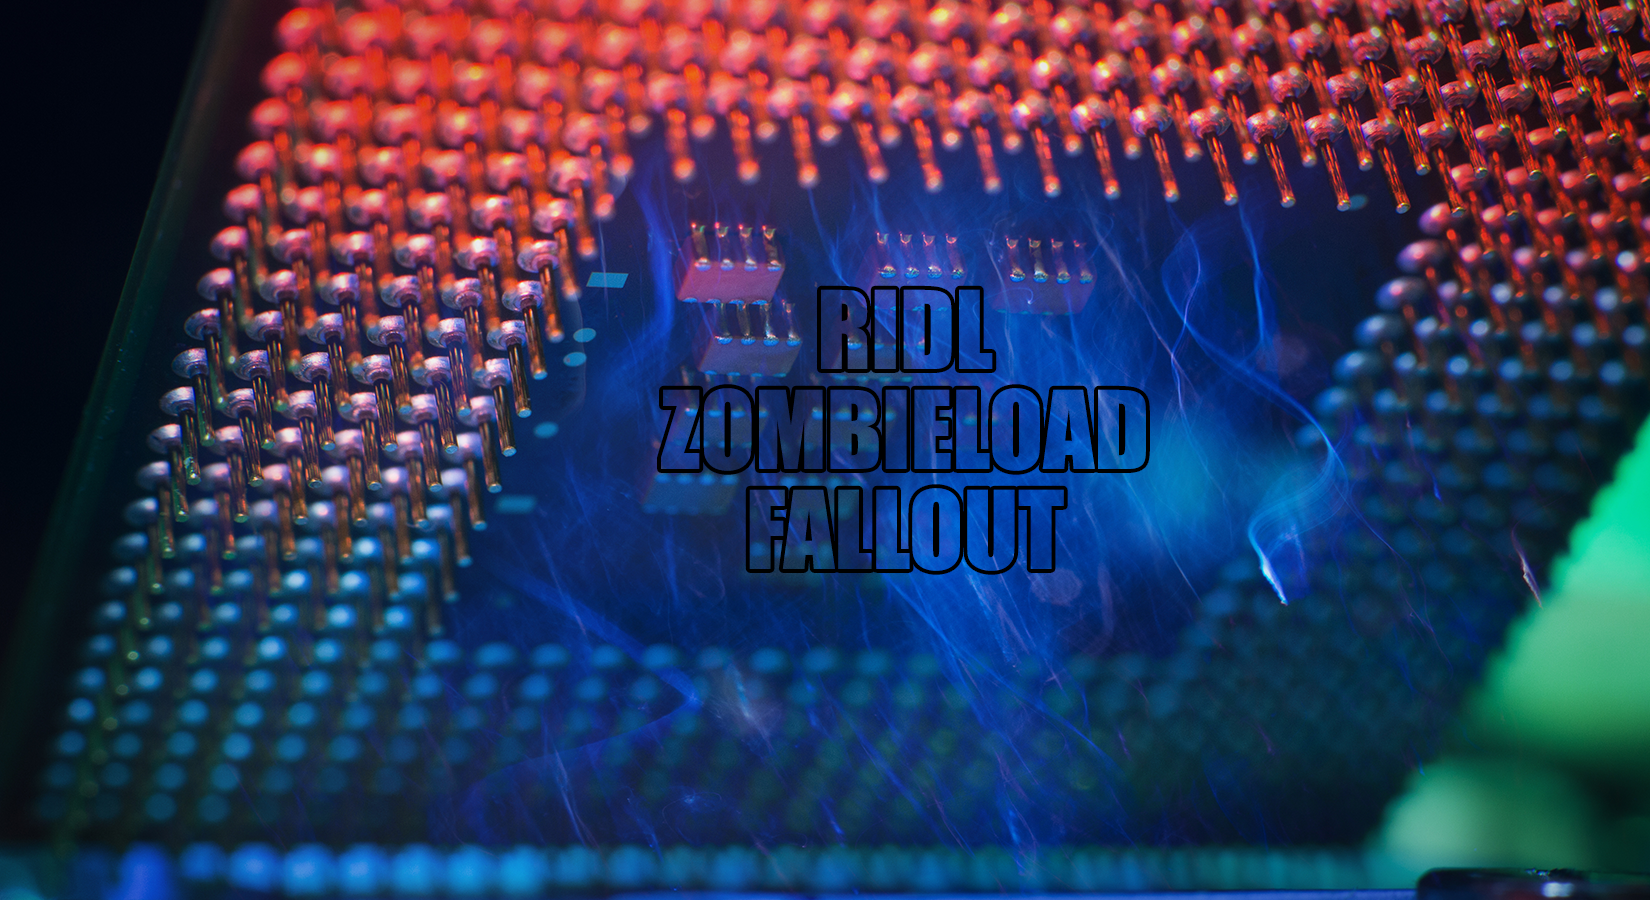 New Intel CPU Flaws Expose VMs and Clouds to Full Takeover – Introducing RIDL, ZombieLoad and Fallout